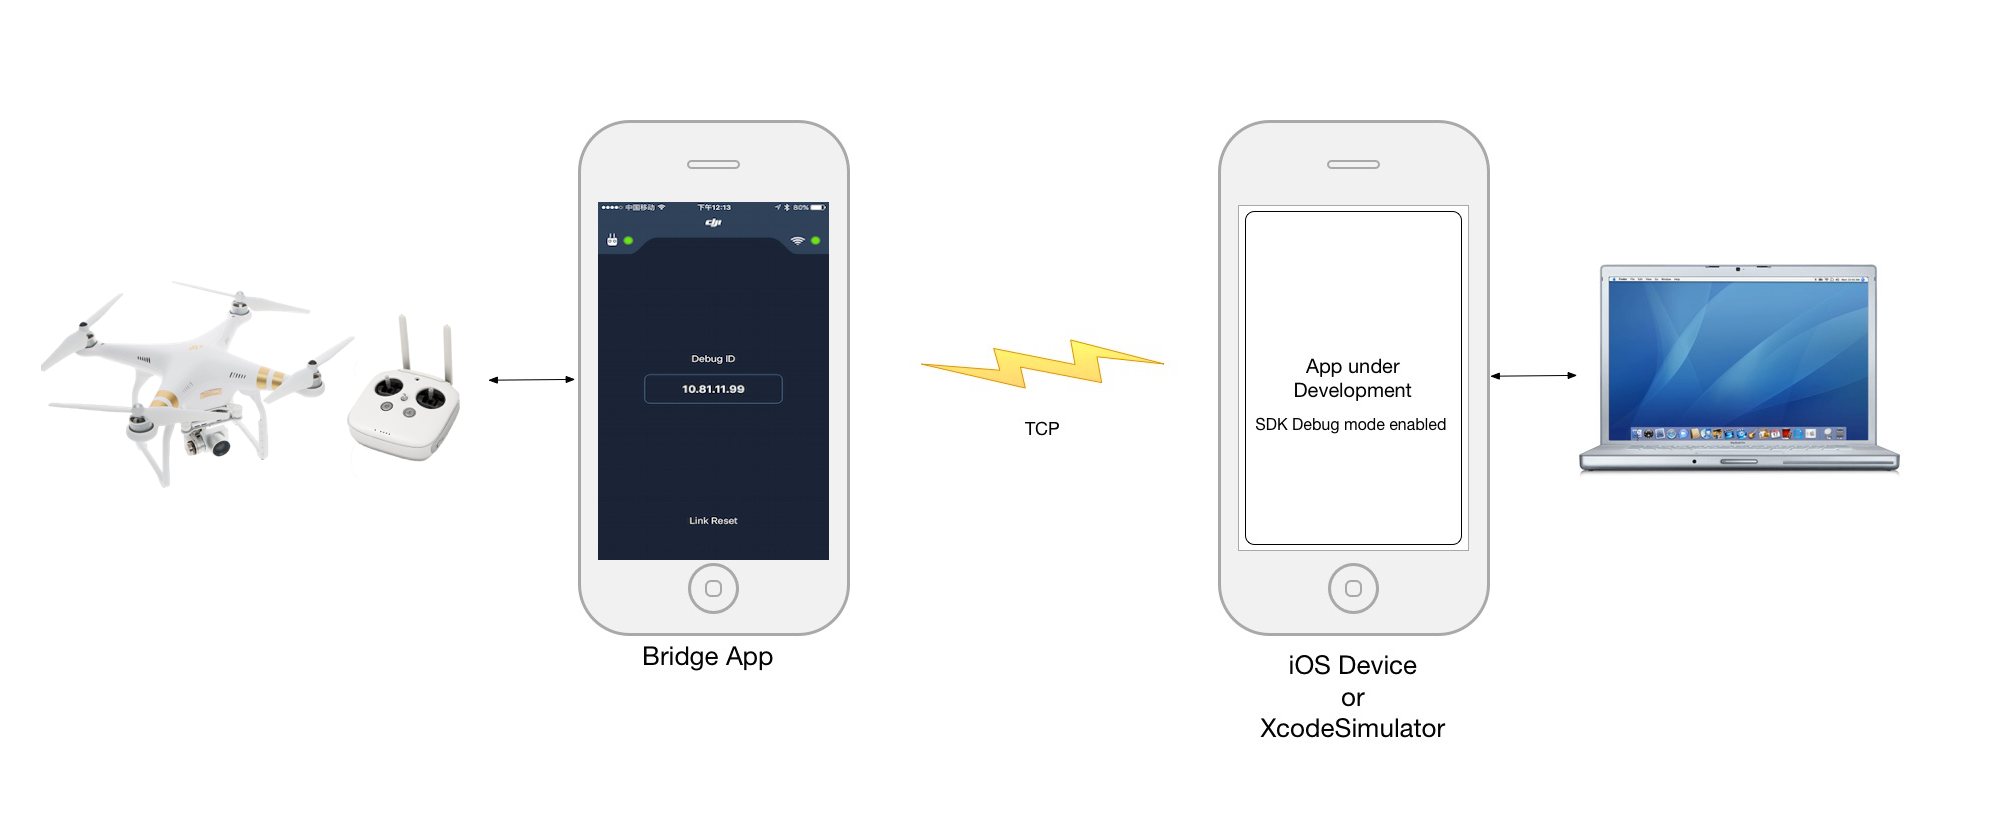 DJI Bridge App Tutorial - DJI Mobile SDK Documentation